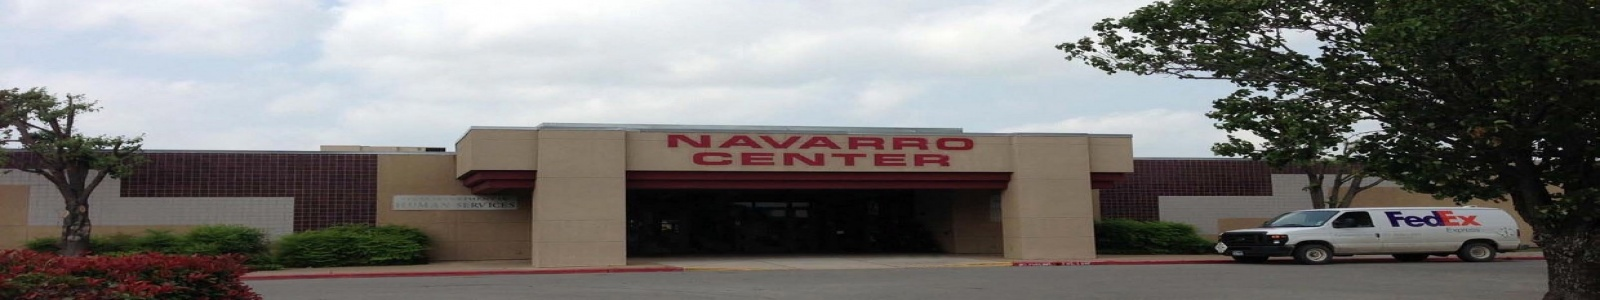 800 North Main Street, Corsicana, Texas 75110, ,Commercial Property,For Lease,Navarro Mall,North Main,1048